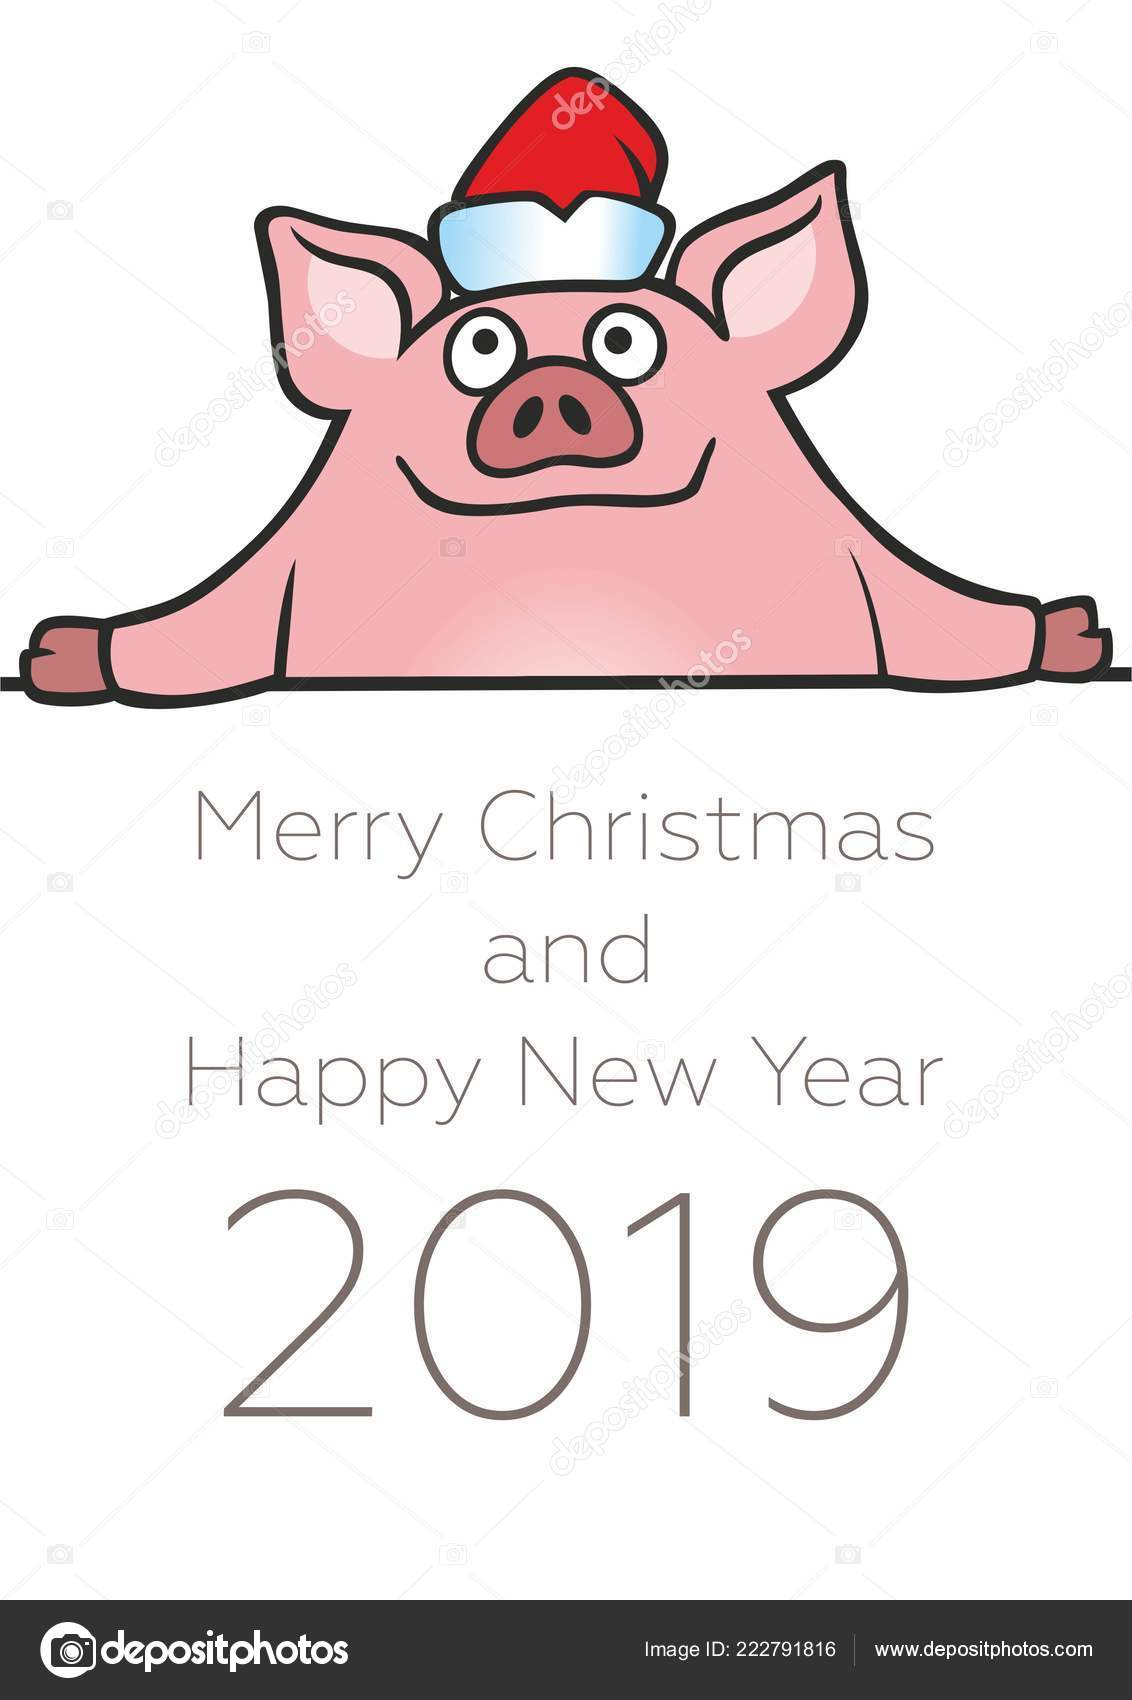 merry christmas happy new year 2019 funny card design cartoon stock vector